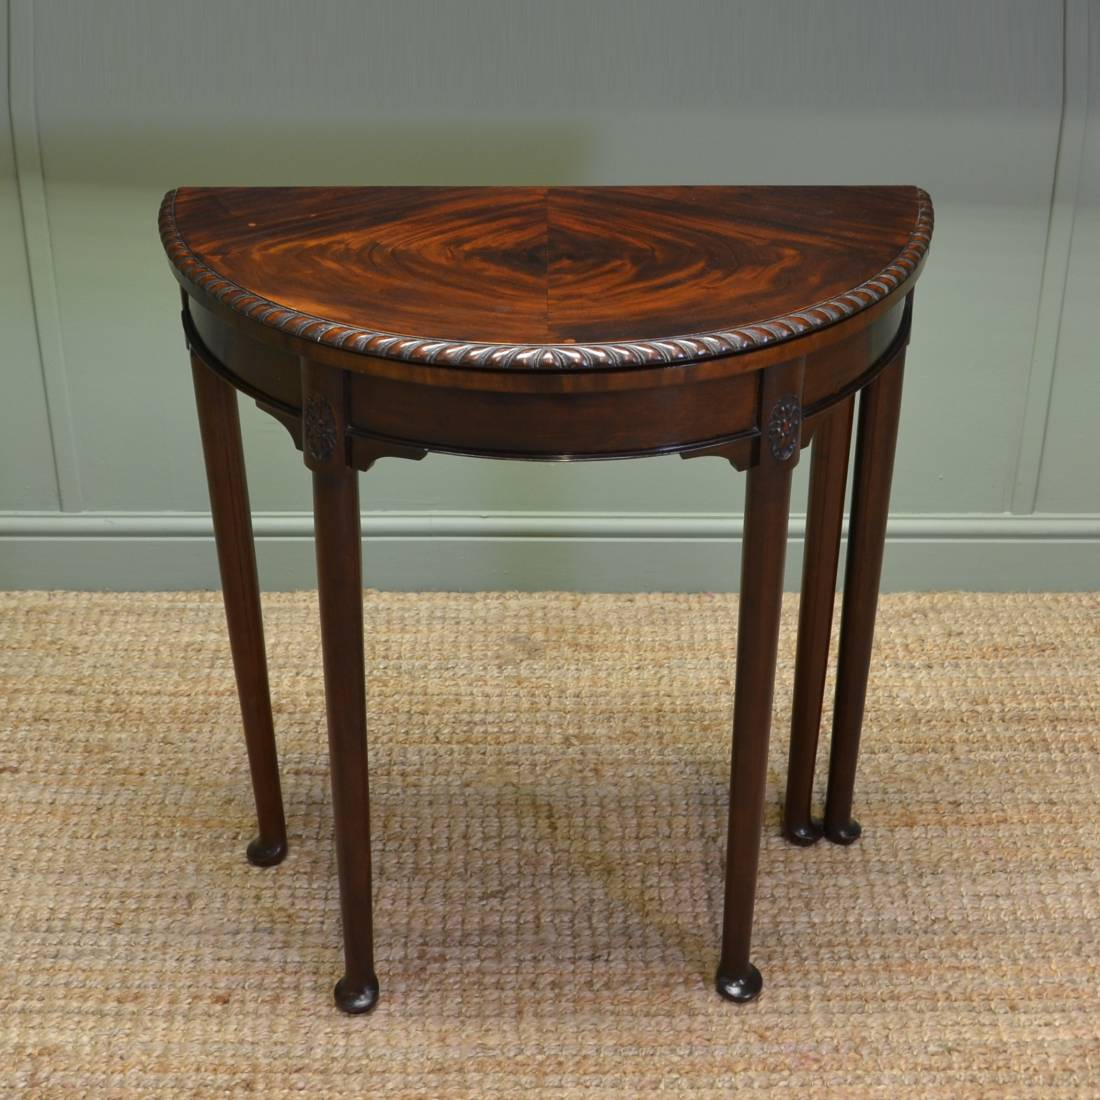 Elegant small edwardian antique d end games side table for Petite table rabattable